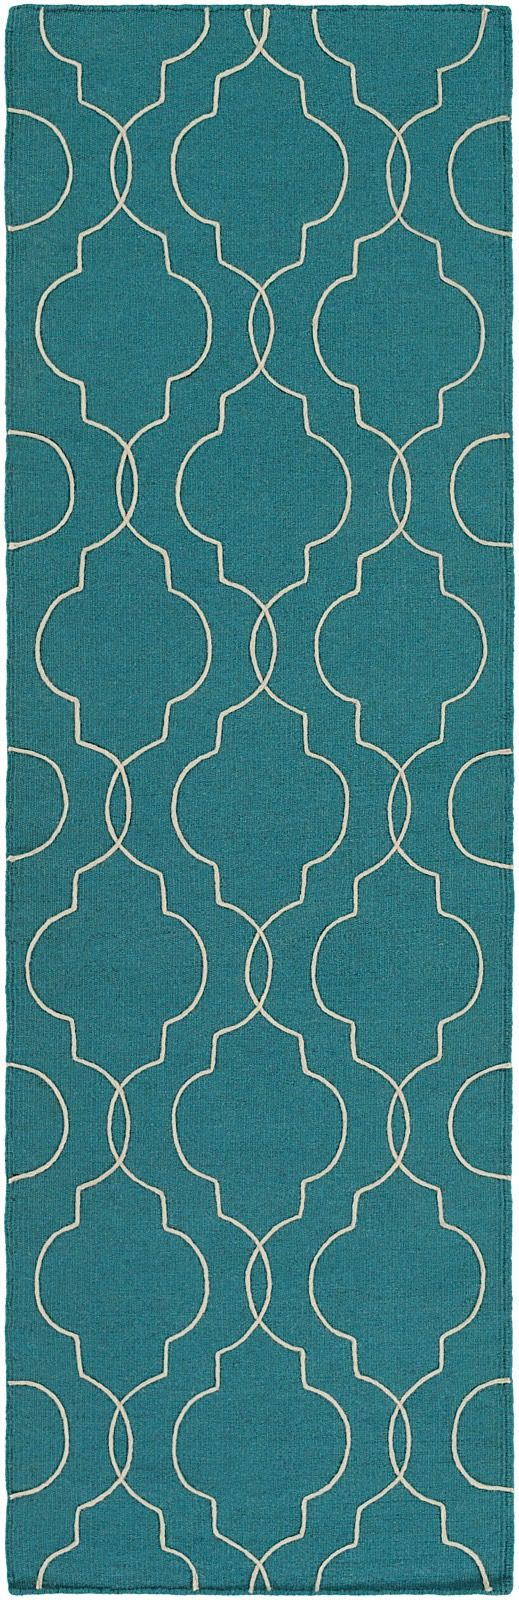 surya seabrook contemporary area rug collection